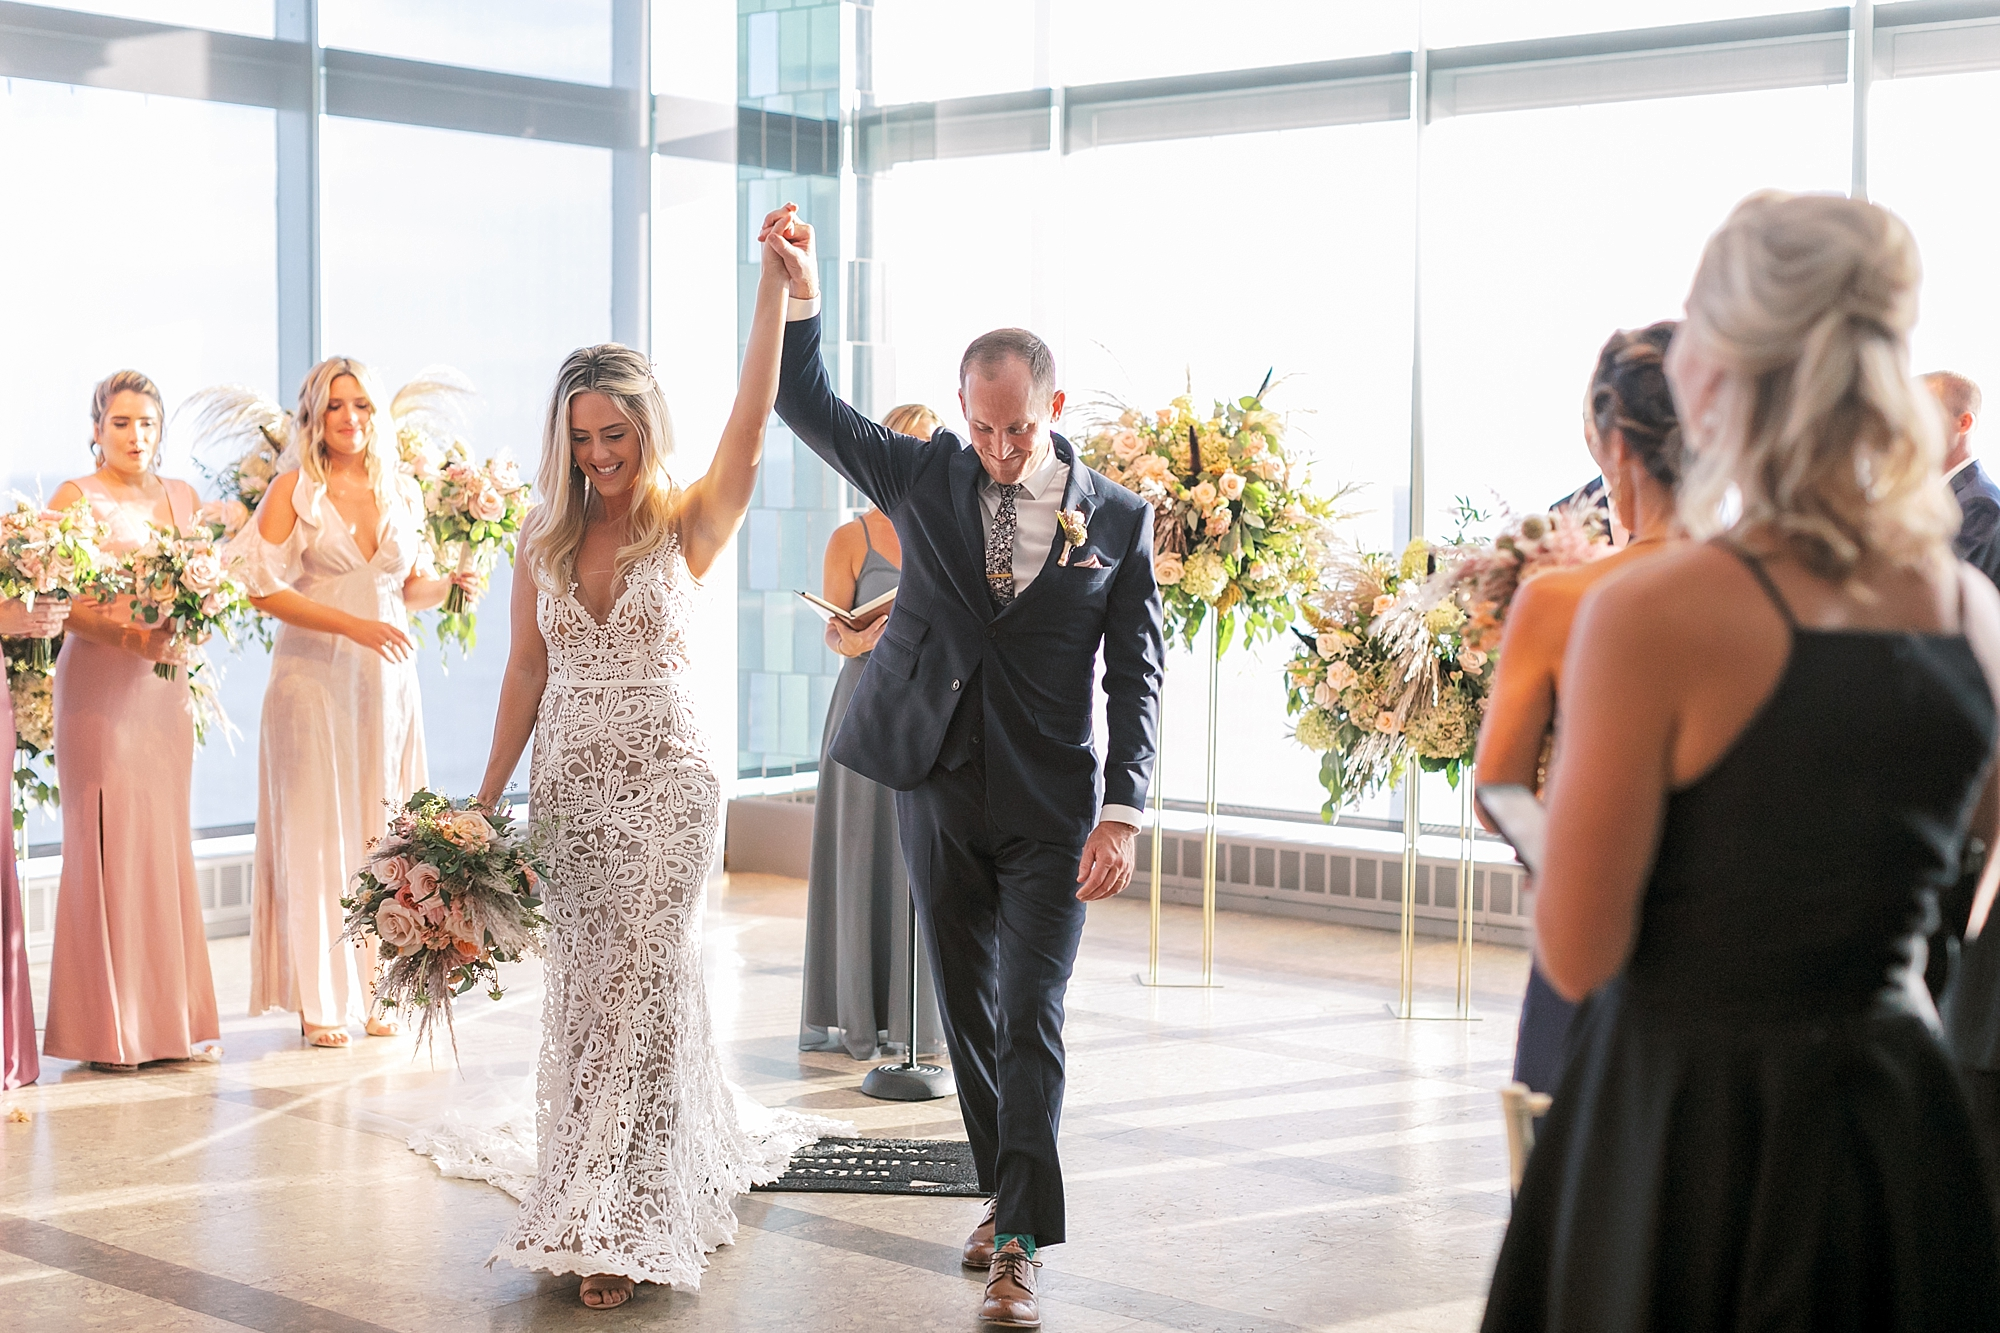 Stylish and Free Spirited Wedding Photography at One Atlantic in Atlantic City NJ by Magdalena Studios 0037 1